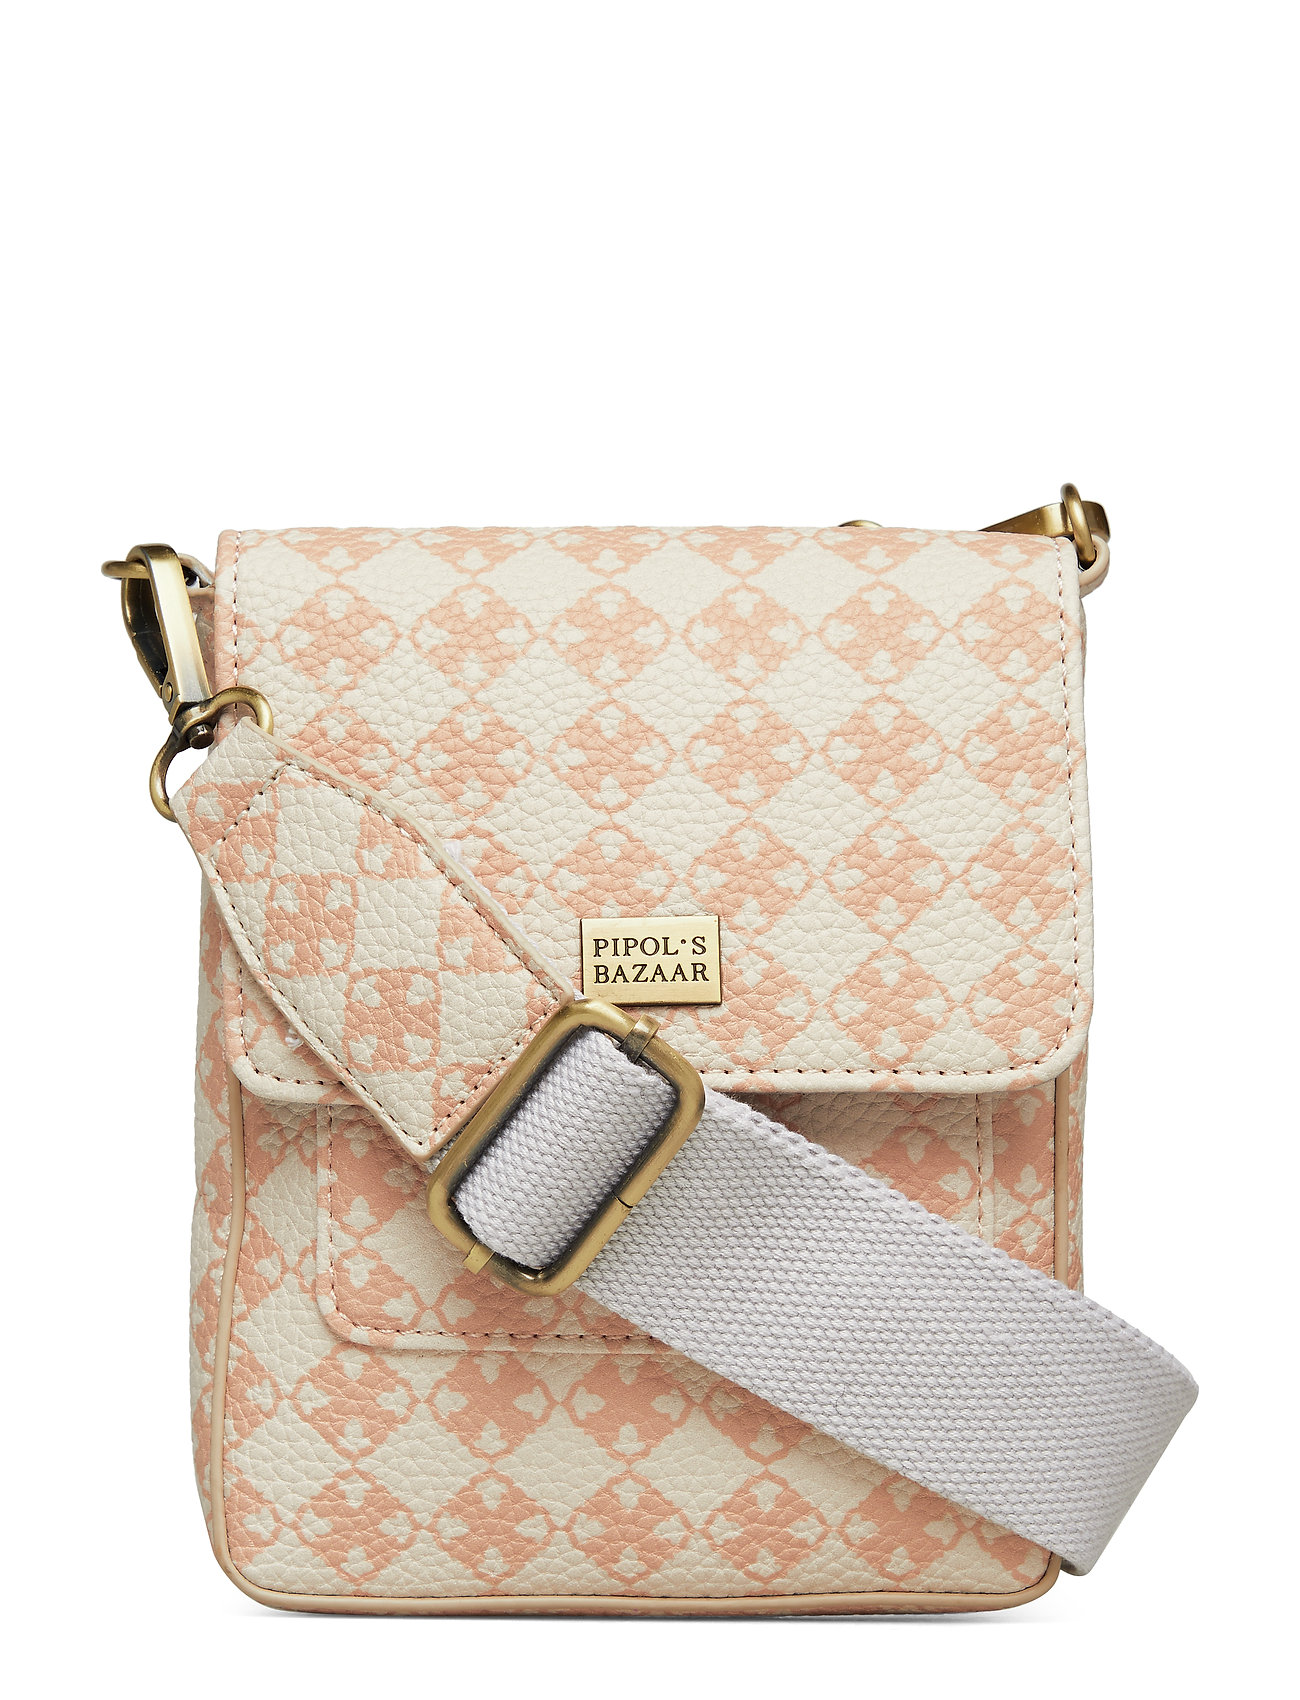 Image of Stile Pipols Saddle Cross Bag Logo Bags Small Shoulder Bags/crossbody Bags Lyserød PIPOL'S BAZAAR (3192763991)